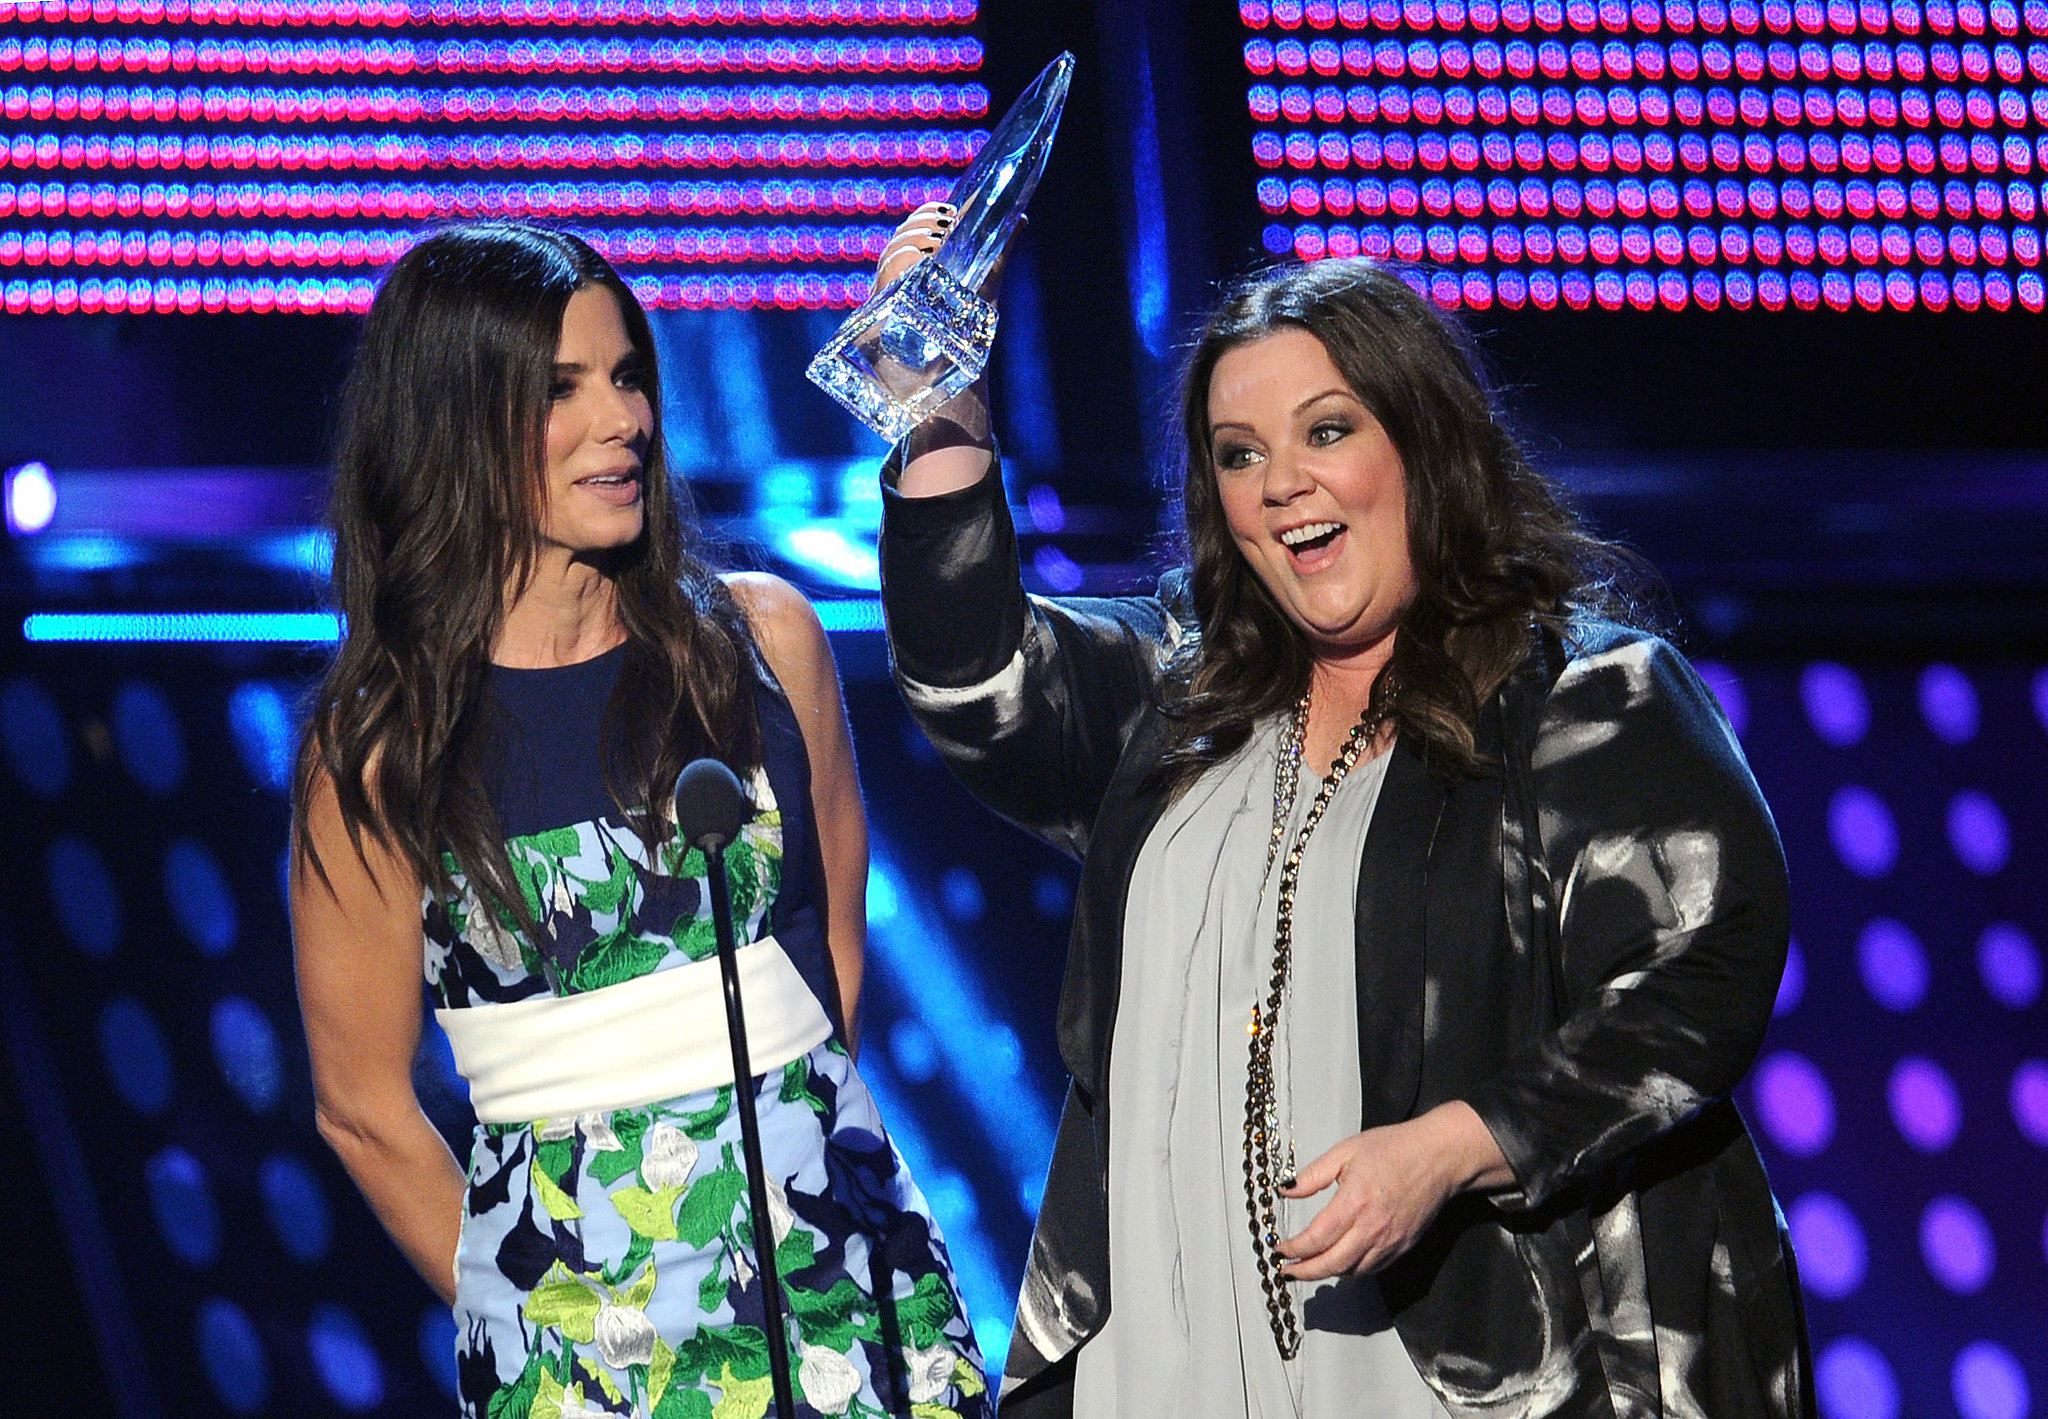 Melissa McCarthy and Sandra Bullock teamed up to accept an award.